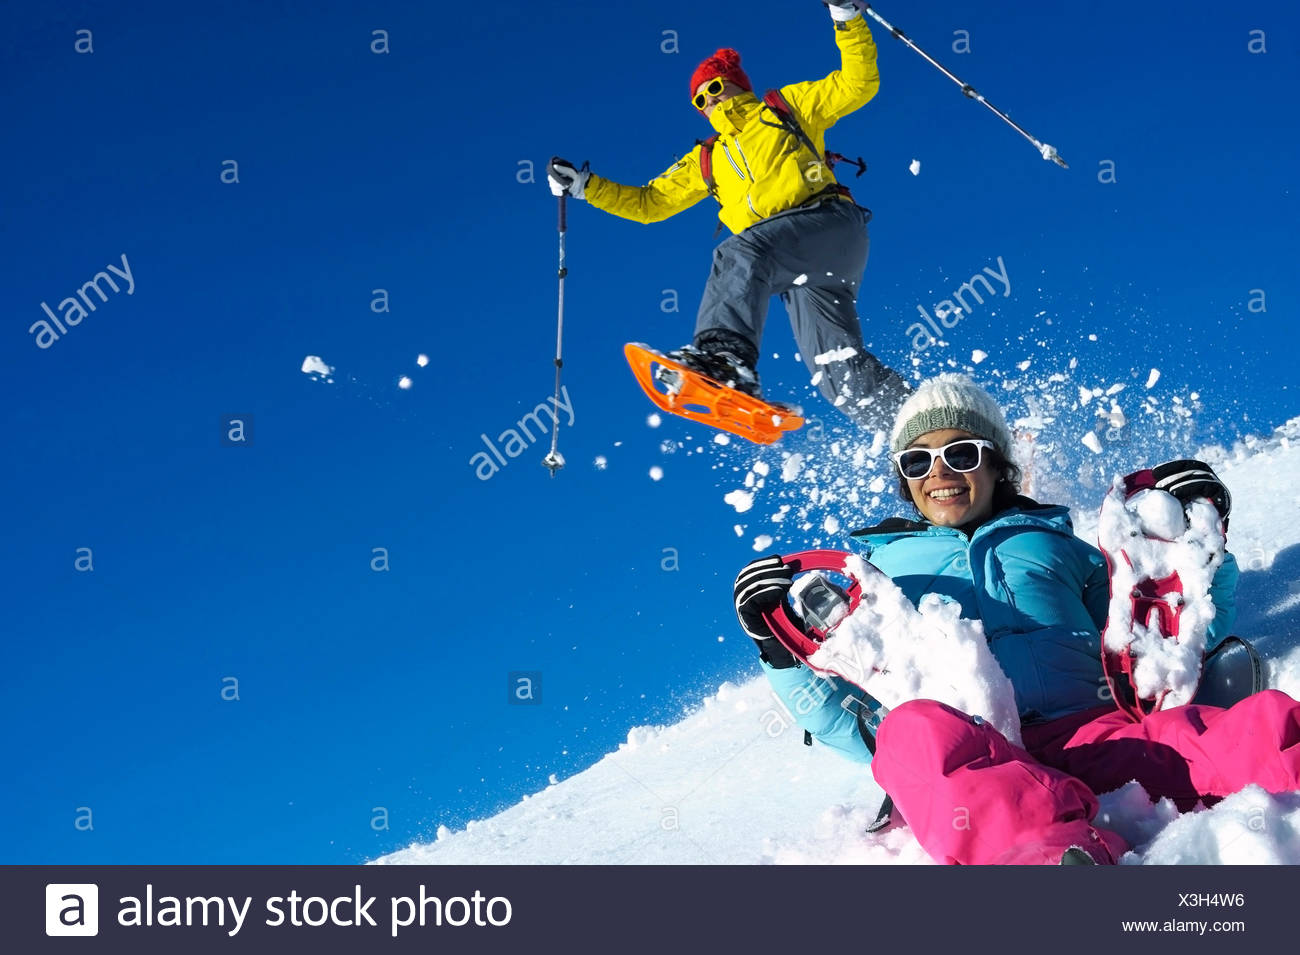 teenager jumping with snow shoes, France, Savoie, Val d Isere - Stock Image